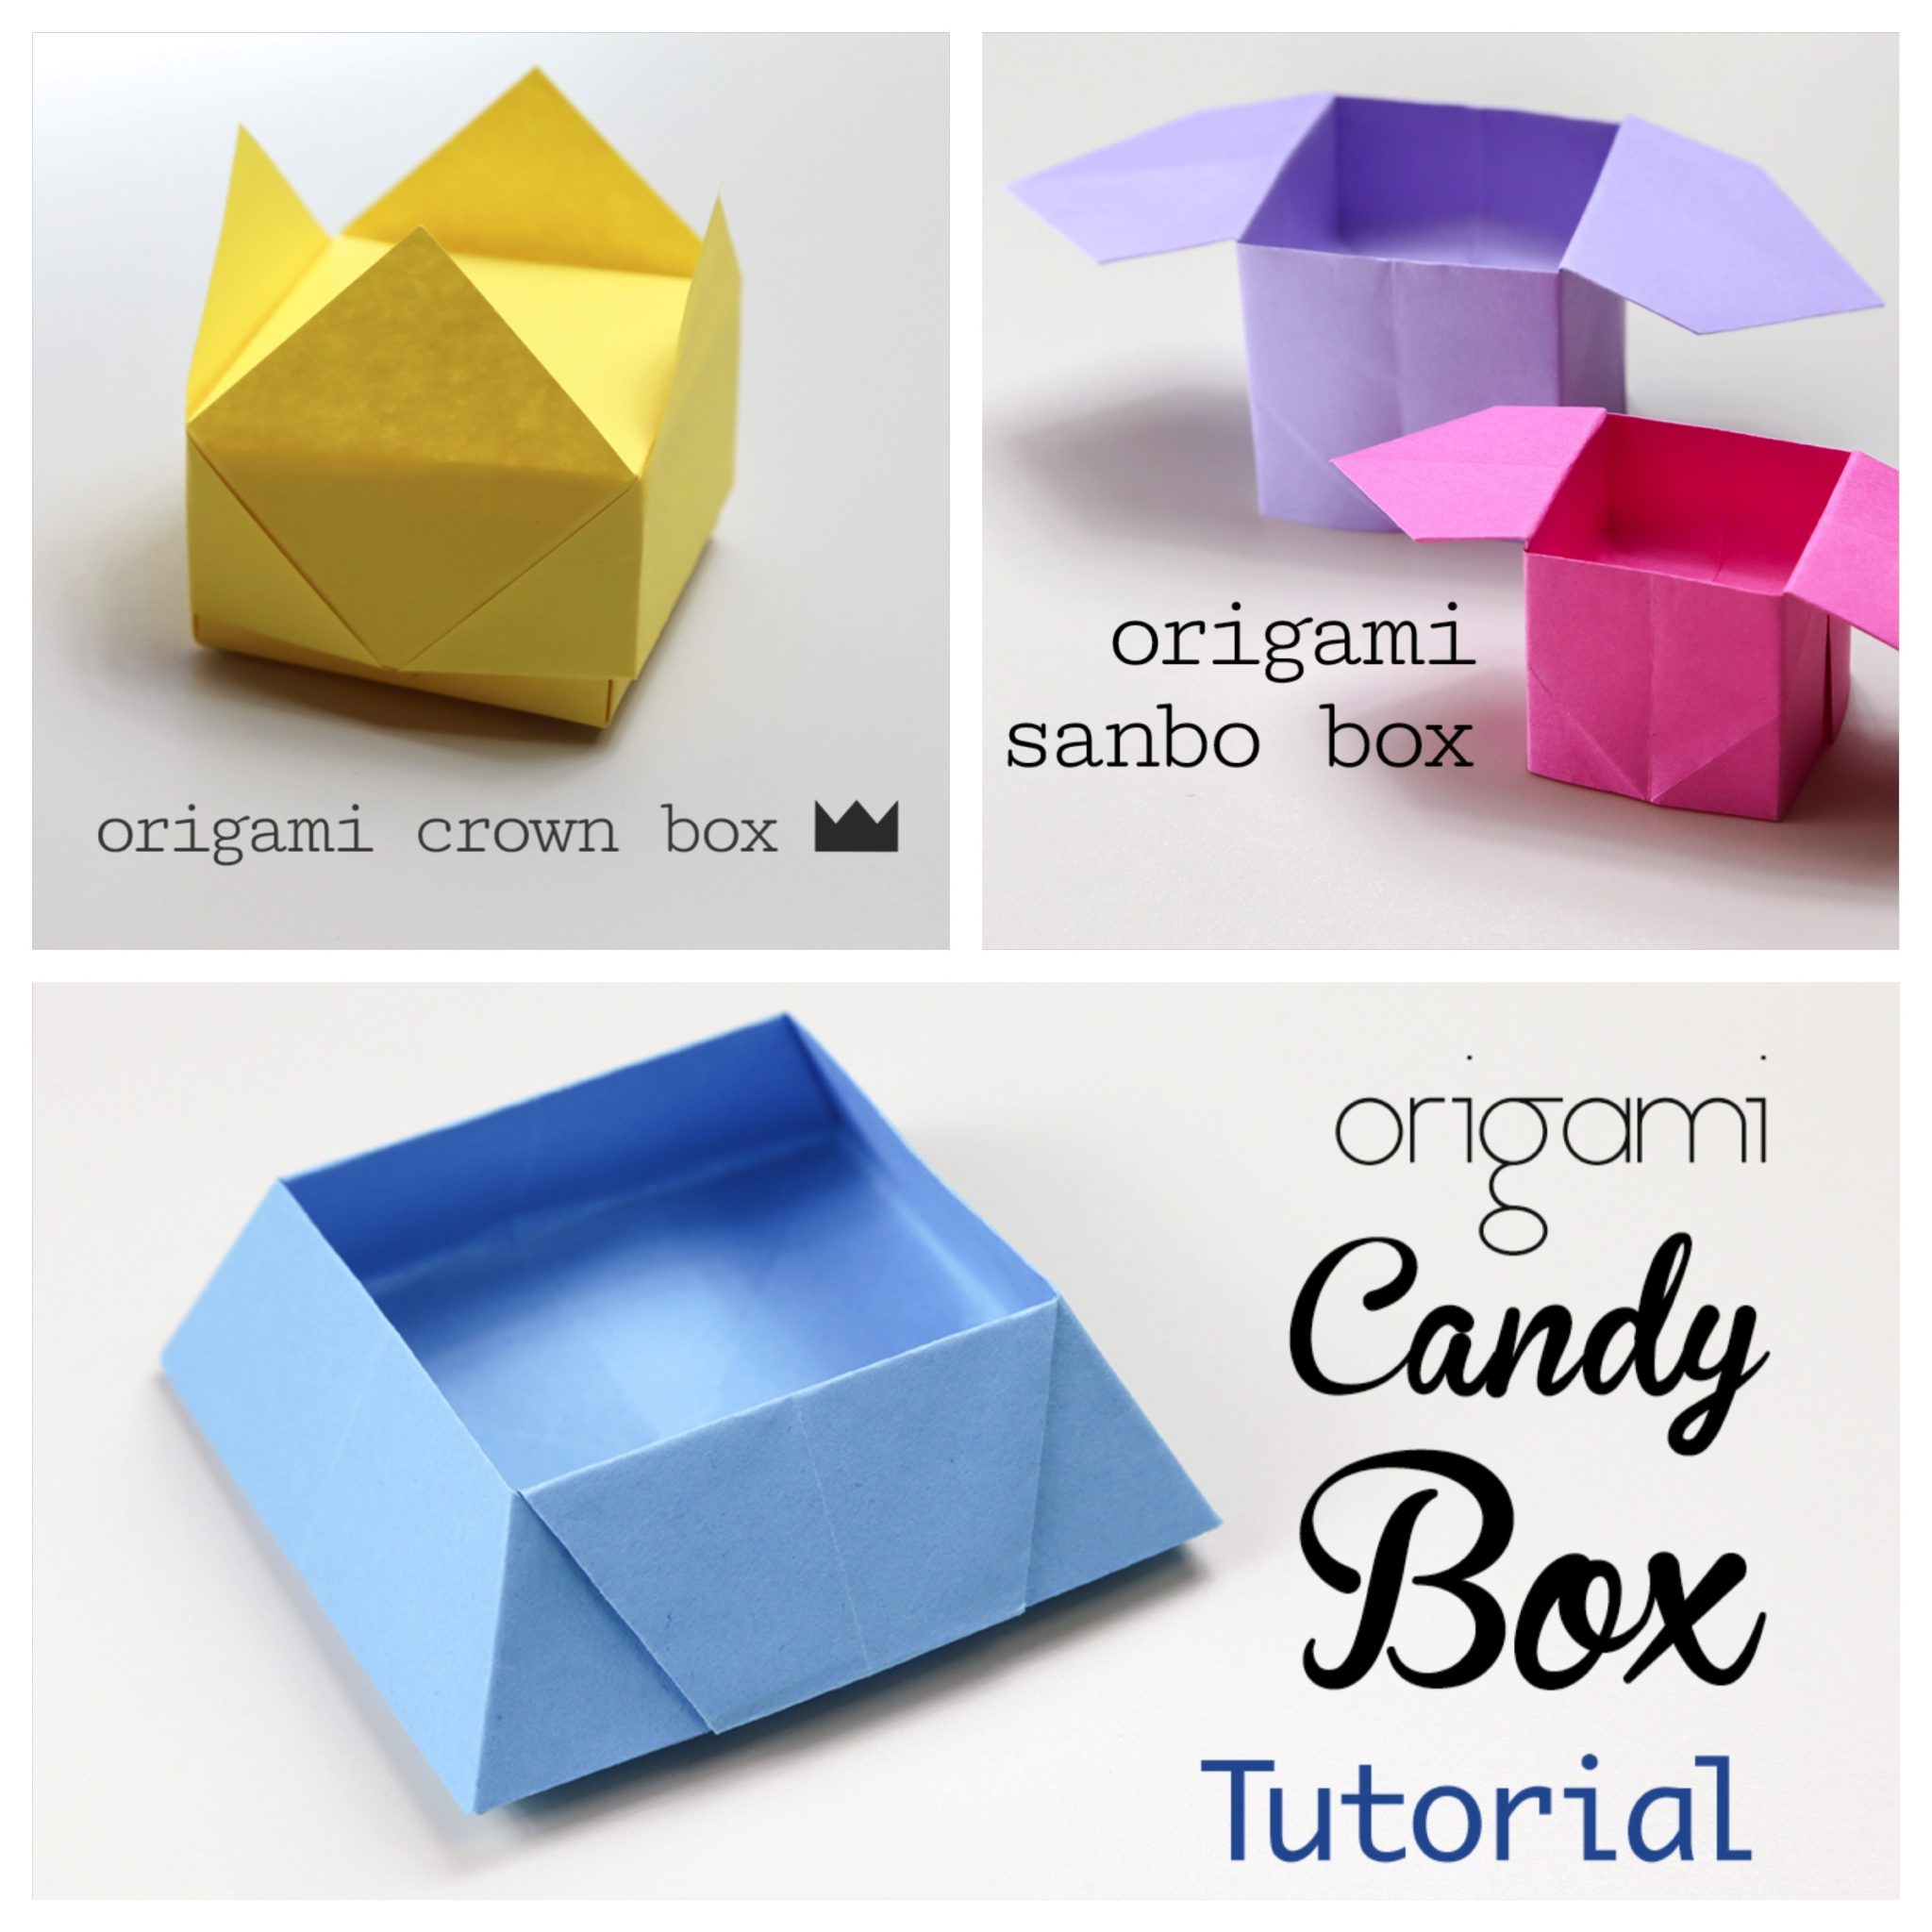 3 Easy Origami Boxes u2013 Photo Instructions  sc 1 st  Paper Kawaii & Easy Origami Dollhouse Tutorial - DIY Paper House! - Paper Kawaii